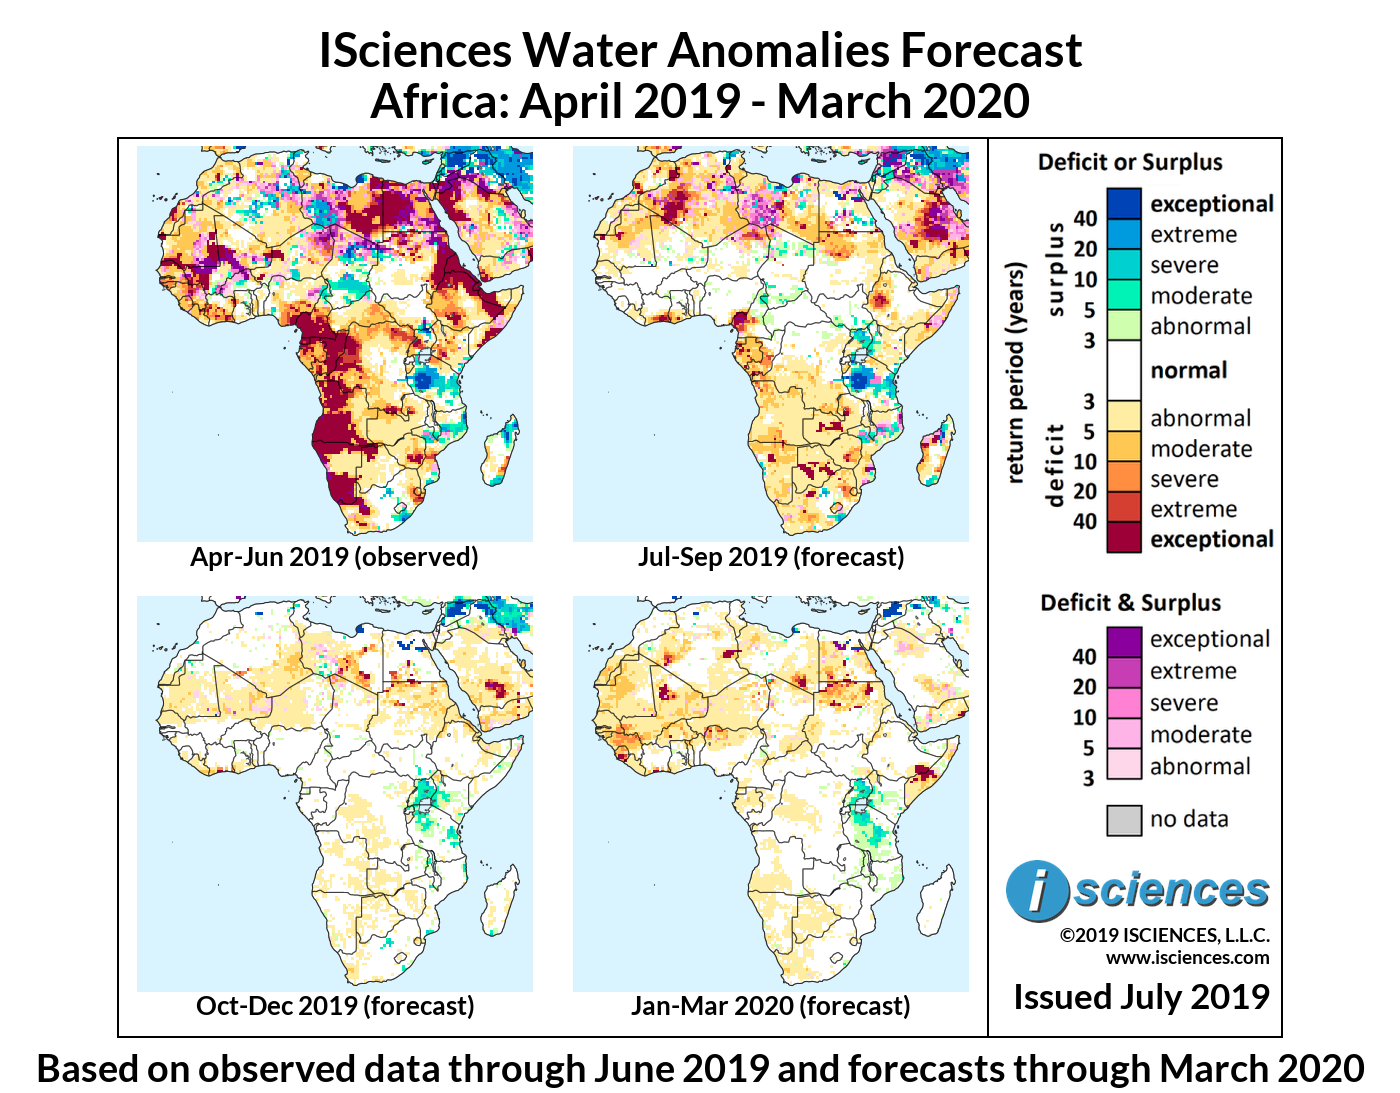 ISciences_Africa_Composite_Adjusted_201904-202003_3mo_panel.png